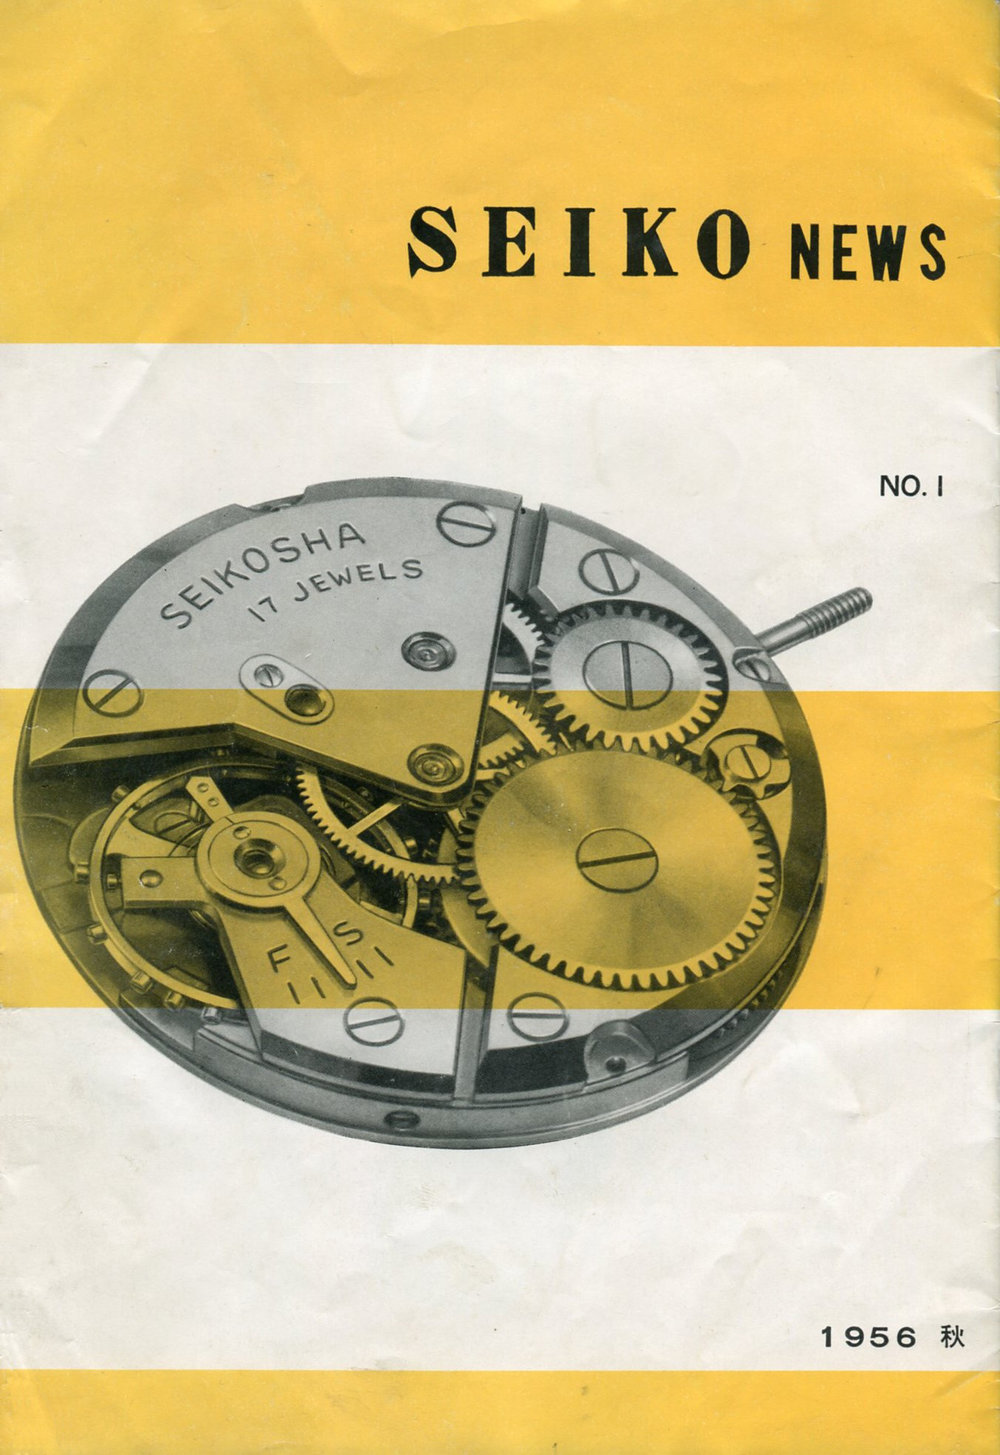 Seiko News 1956 No. 1